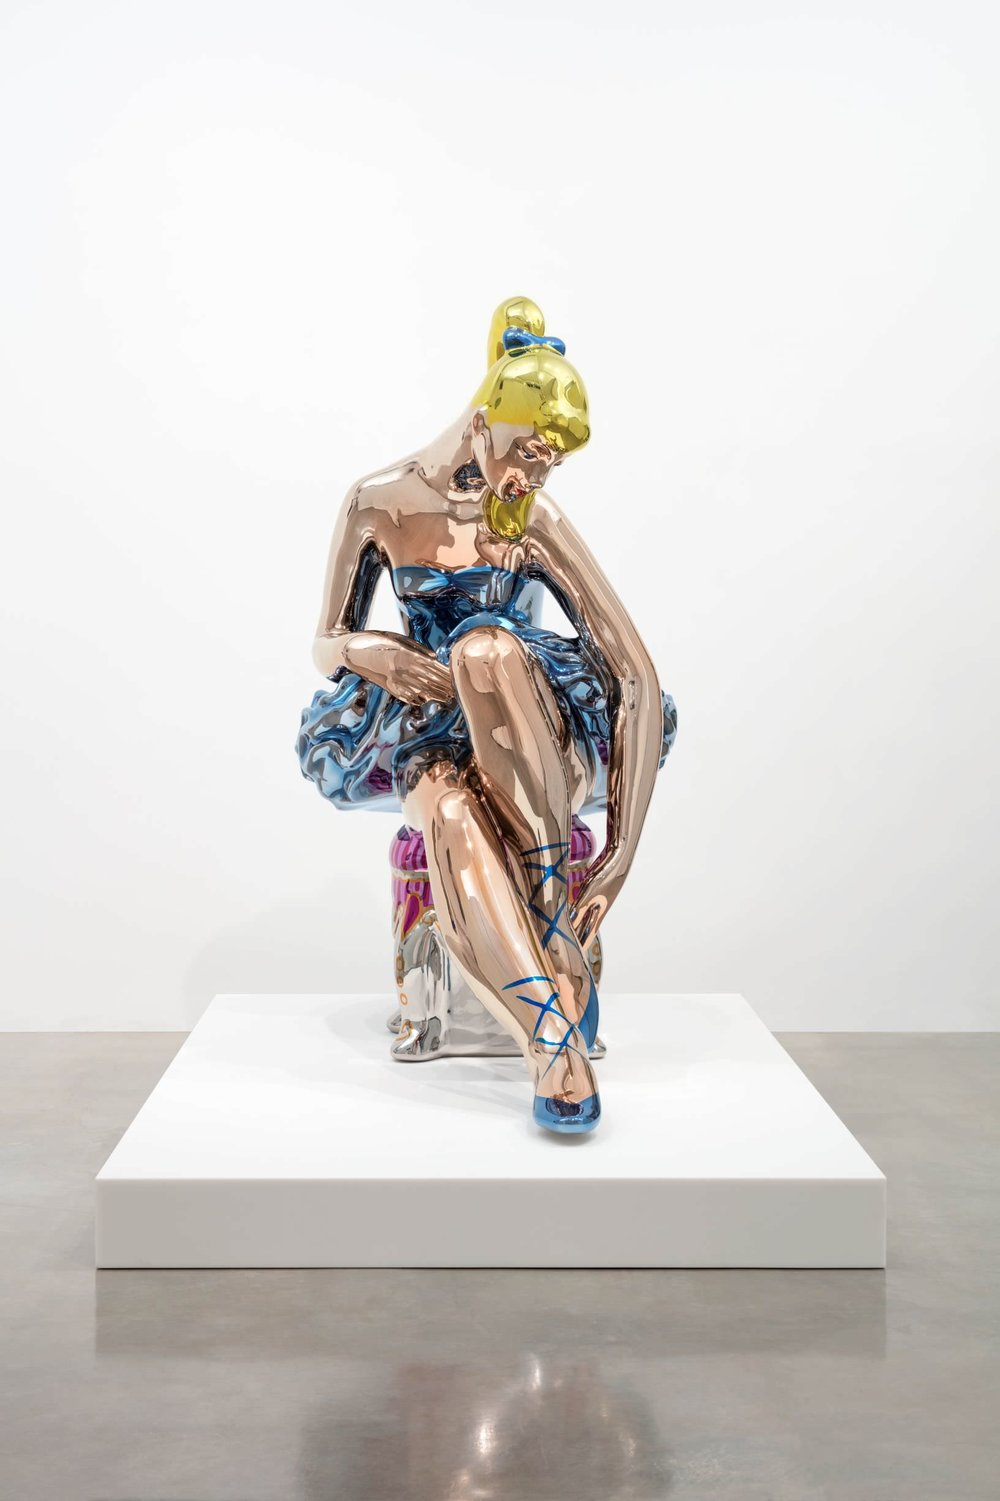 Jeff Koons (b. 1955); Seated Ballerina; 2010–15; Mirror-polished stainless steel with transparent colour coating; 210.8 x 113.5 x 199.8 cm; Artist's proof of an edition of 3 plus AP; Collection of the artist © Jeff Koons. Photo: Fredrik Nilsen, 2017. Courtesy Gagosian